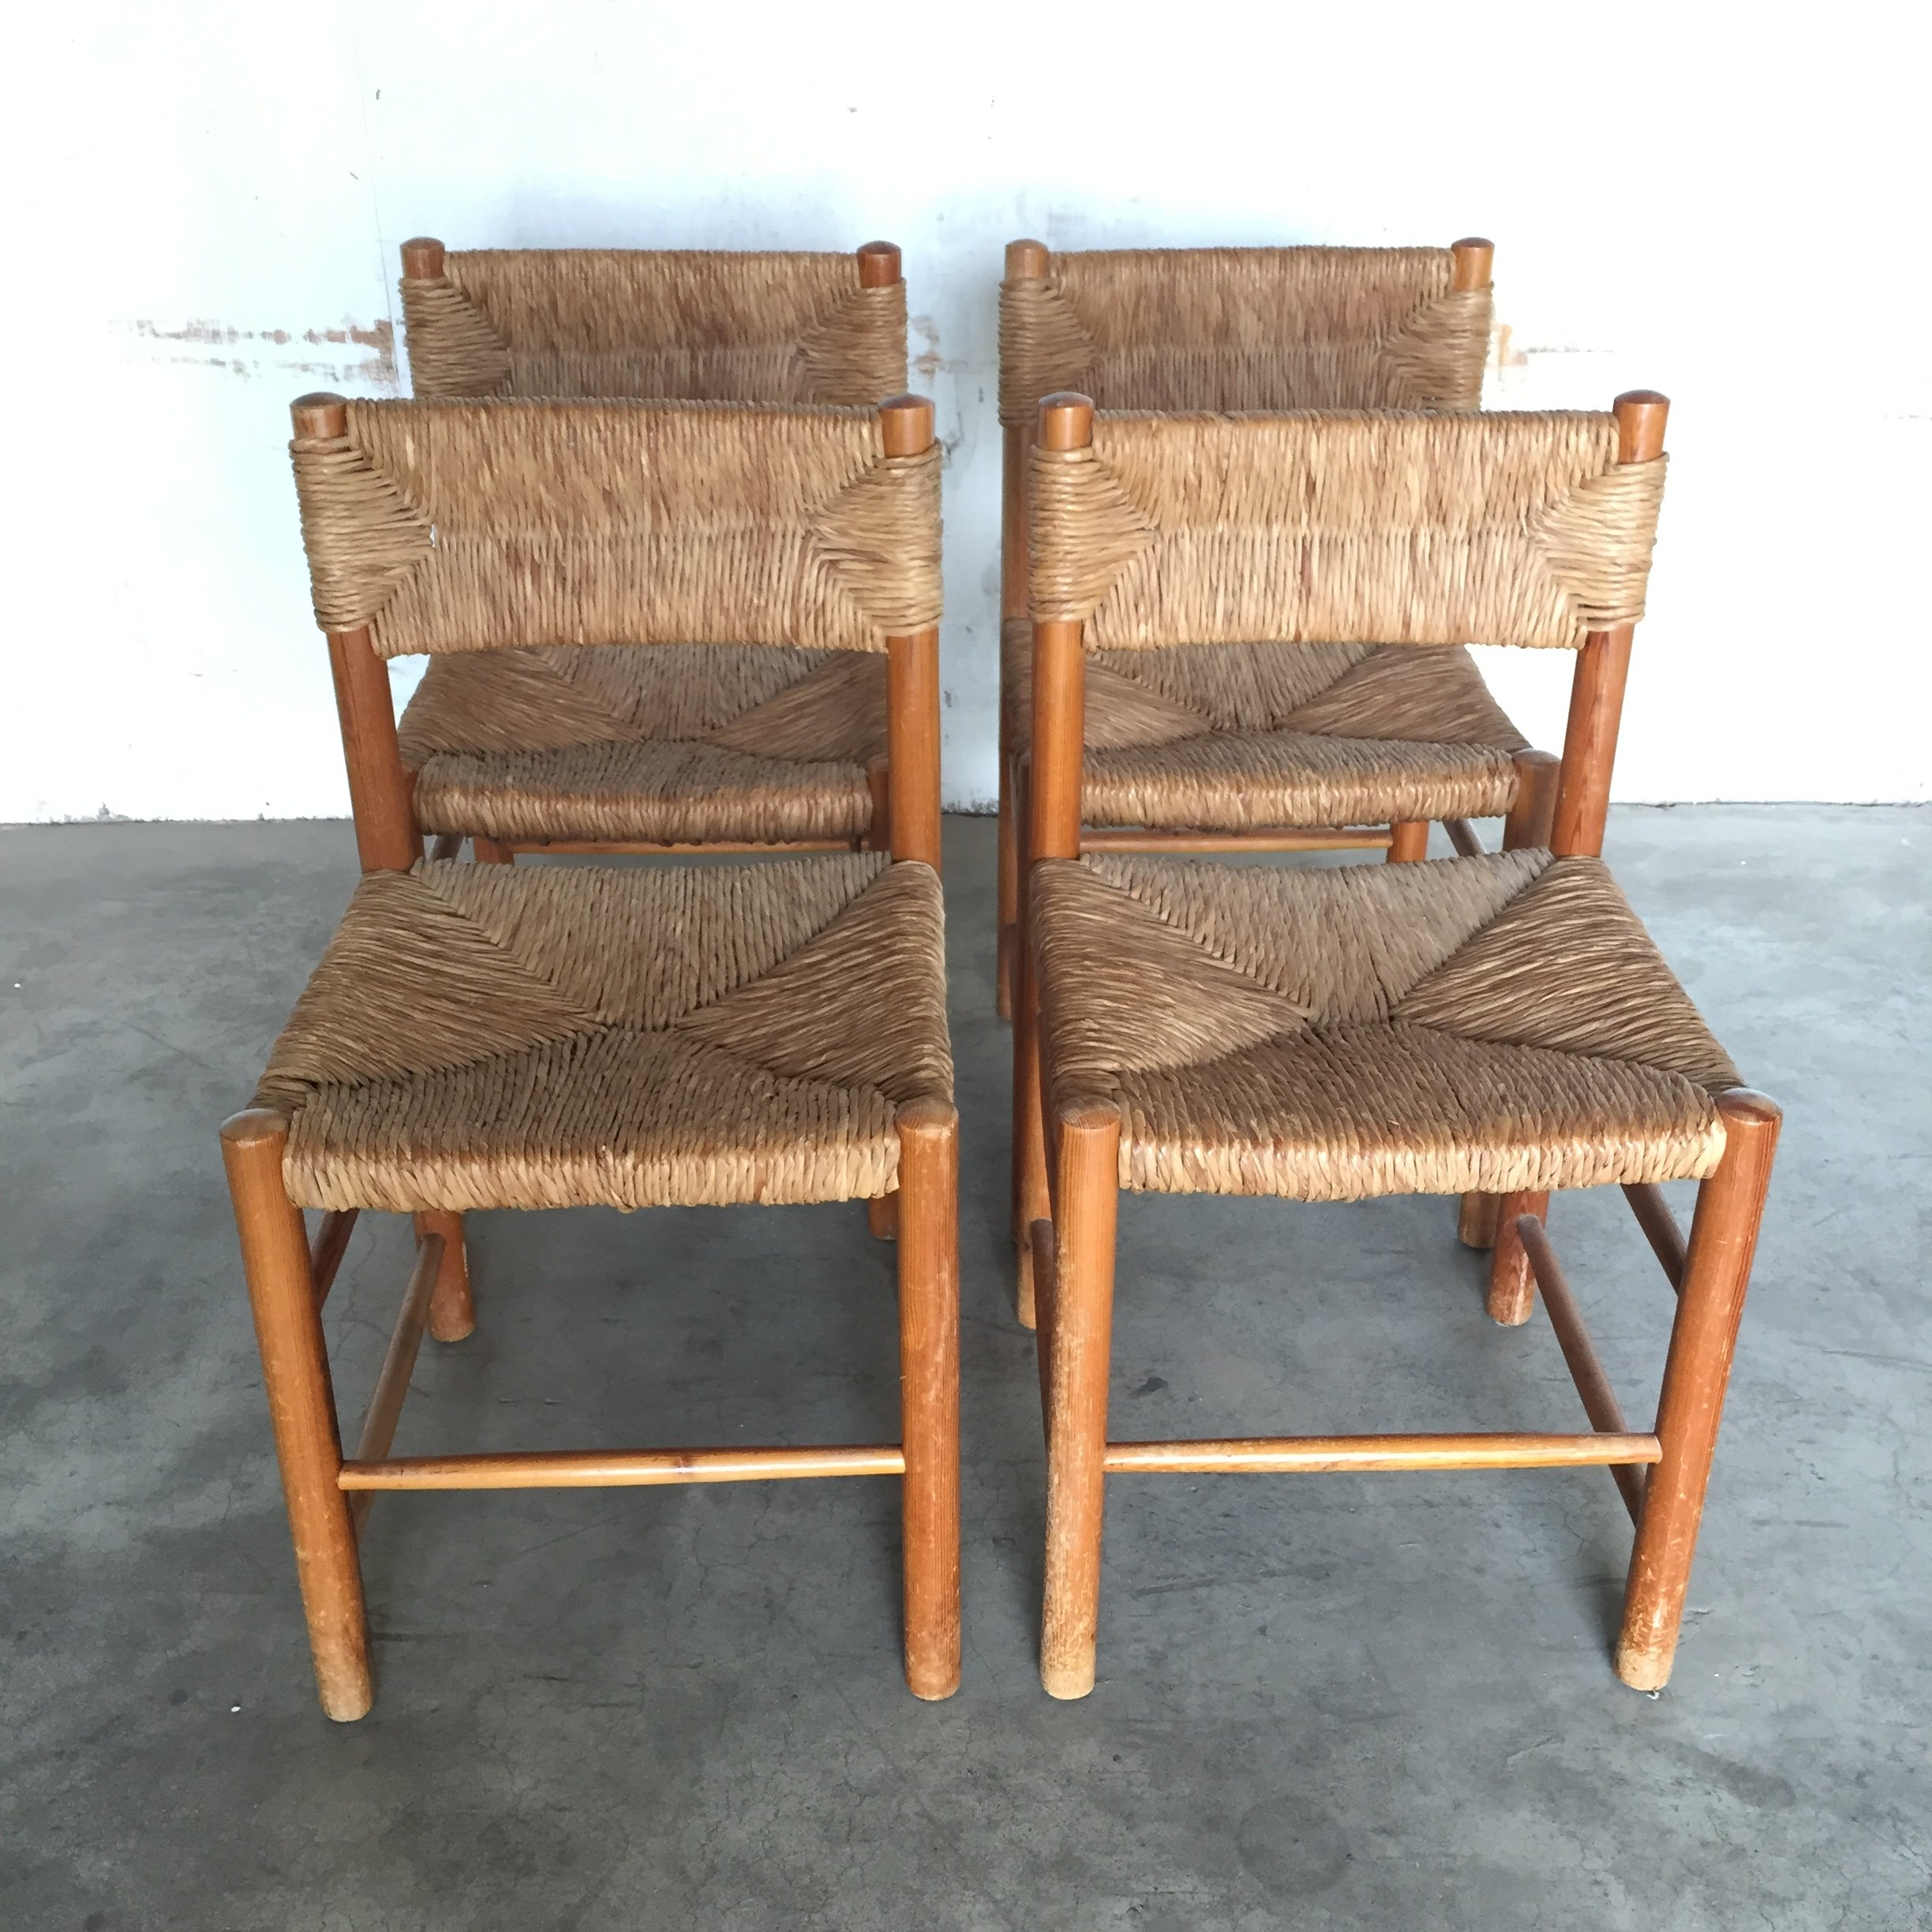 Set of 4 French pine chairs by Charlotte Perriand for Sentou 1960s  sc 1 st  VNTG & Set of 4 French pine chairs by Charlotte Perriand for Sentou 1960s ...